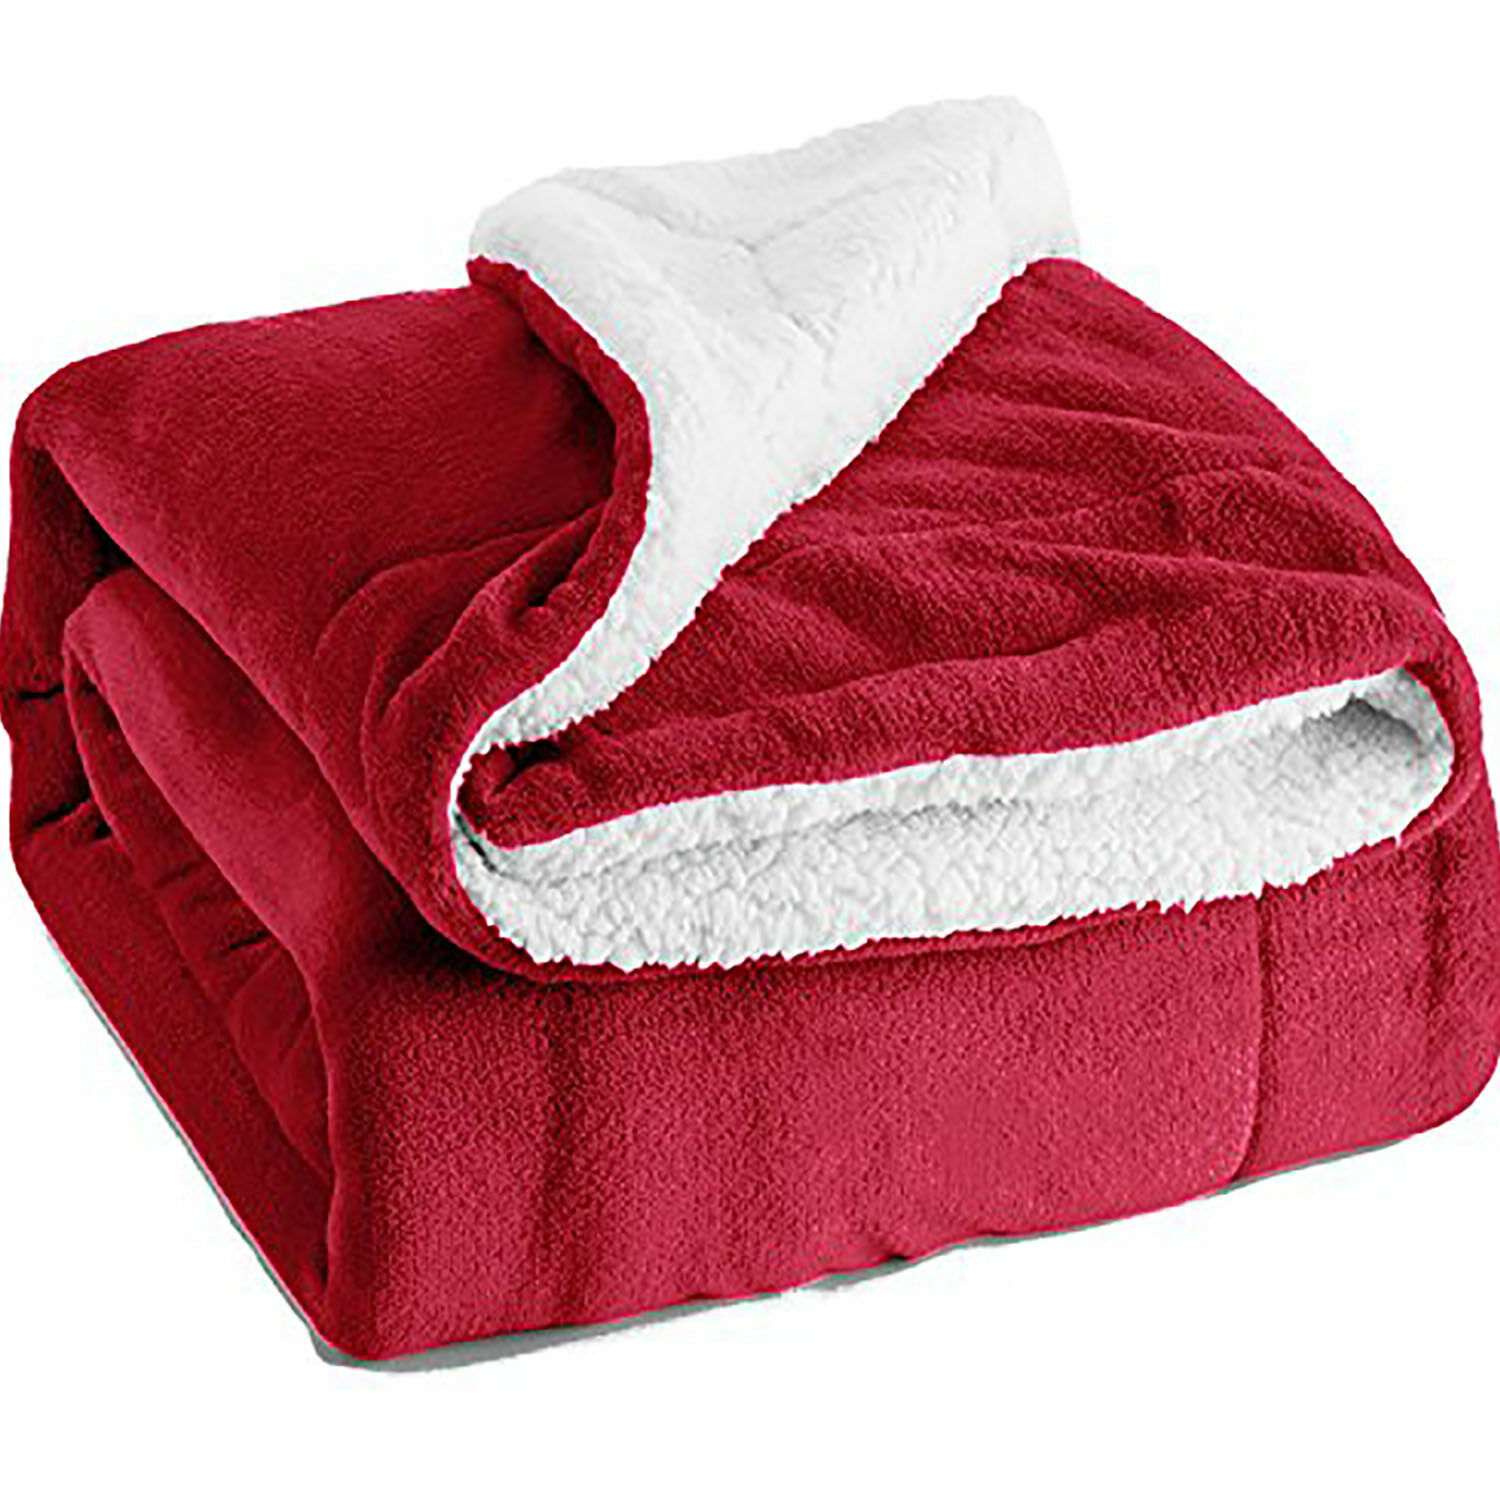 Sherpa Hot Winter Fluffy Warm Soft Plush Solid color Roll-up Throw Home Blankets